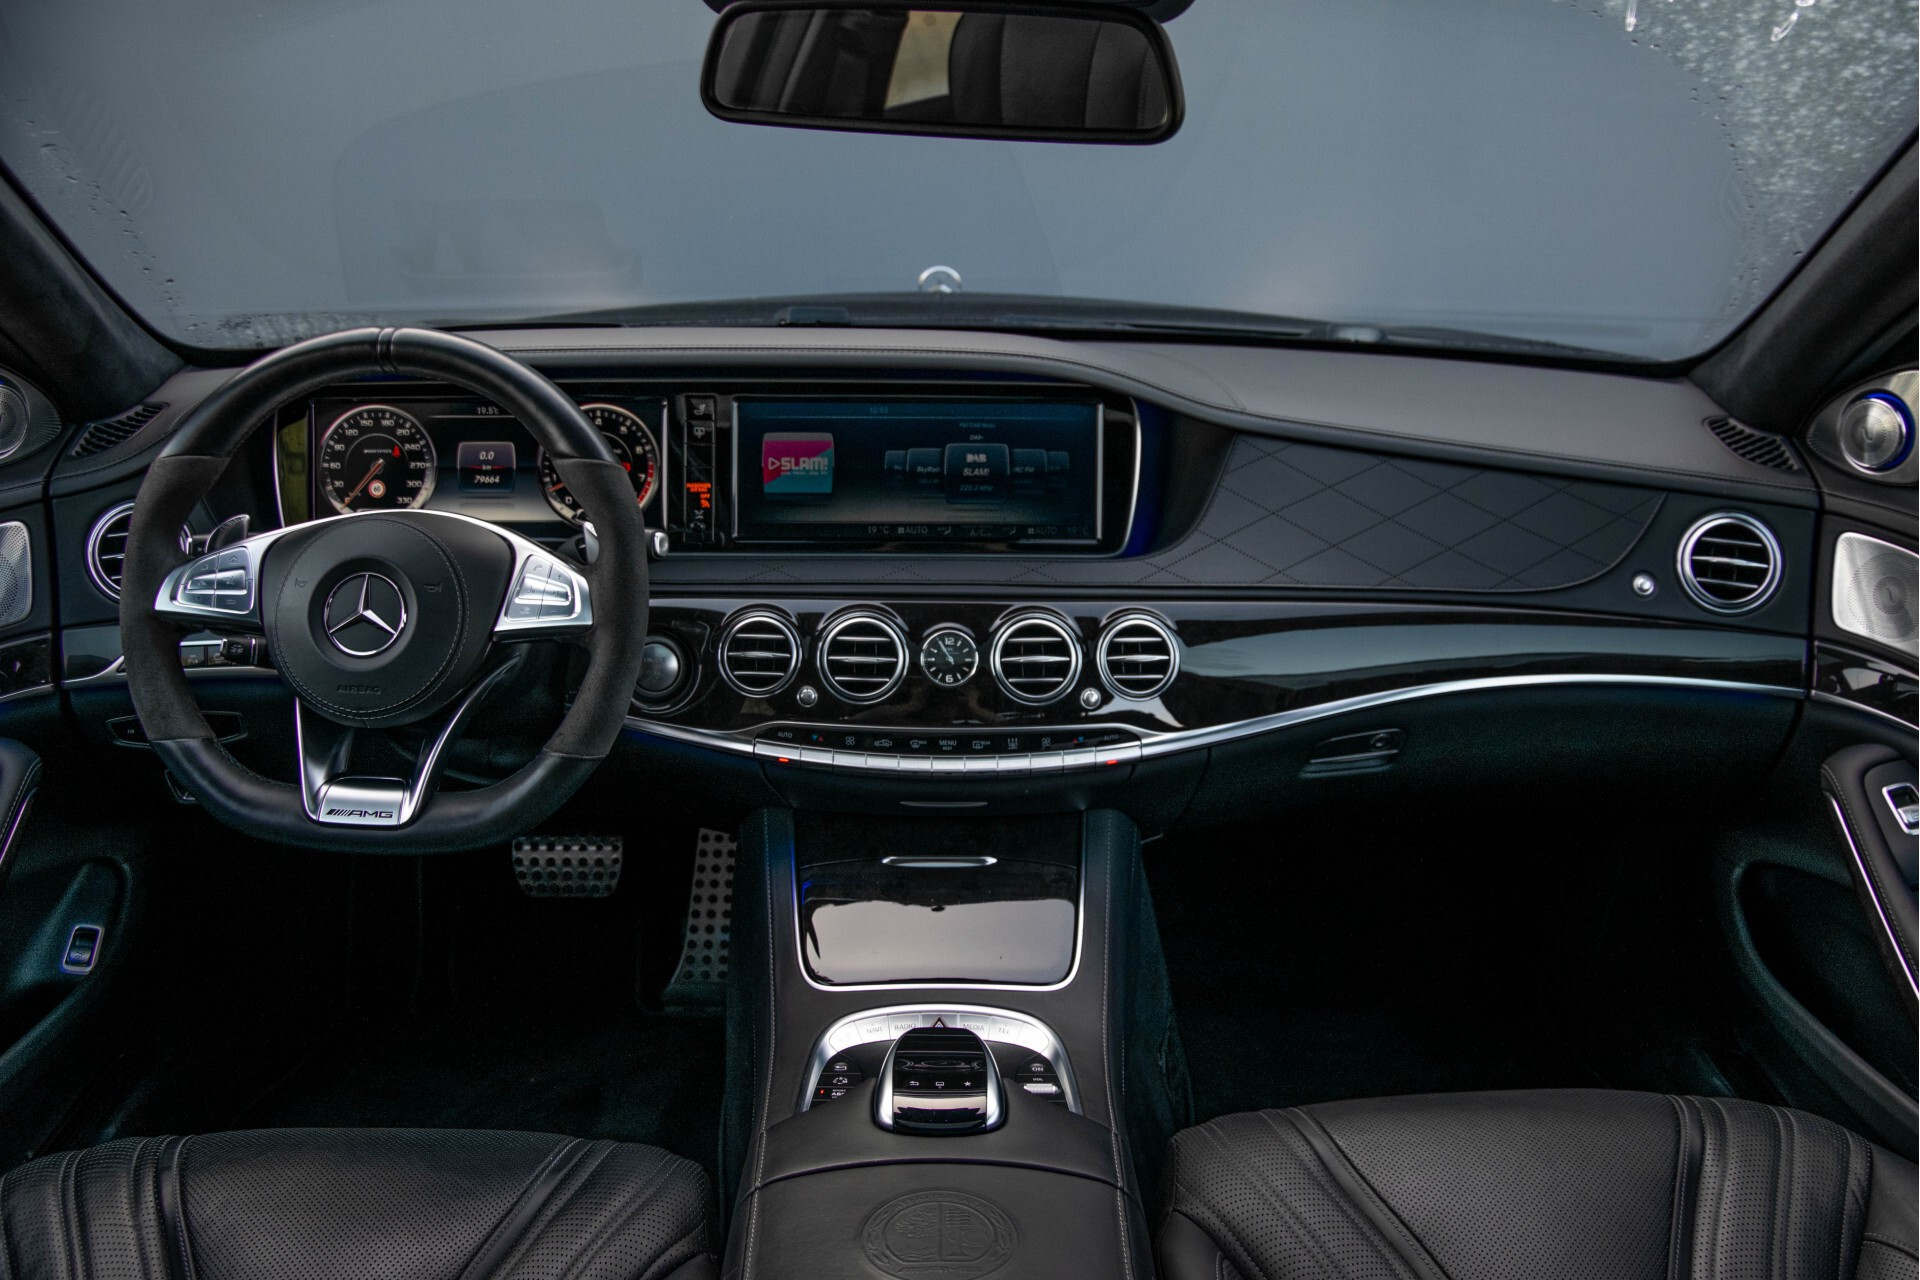 Mercedes-Benz S-Klasse 63 AMG Exclusive/Burmester High-End/Driverspack Aut7 Foto 7